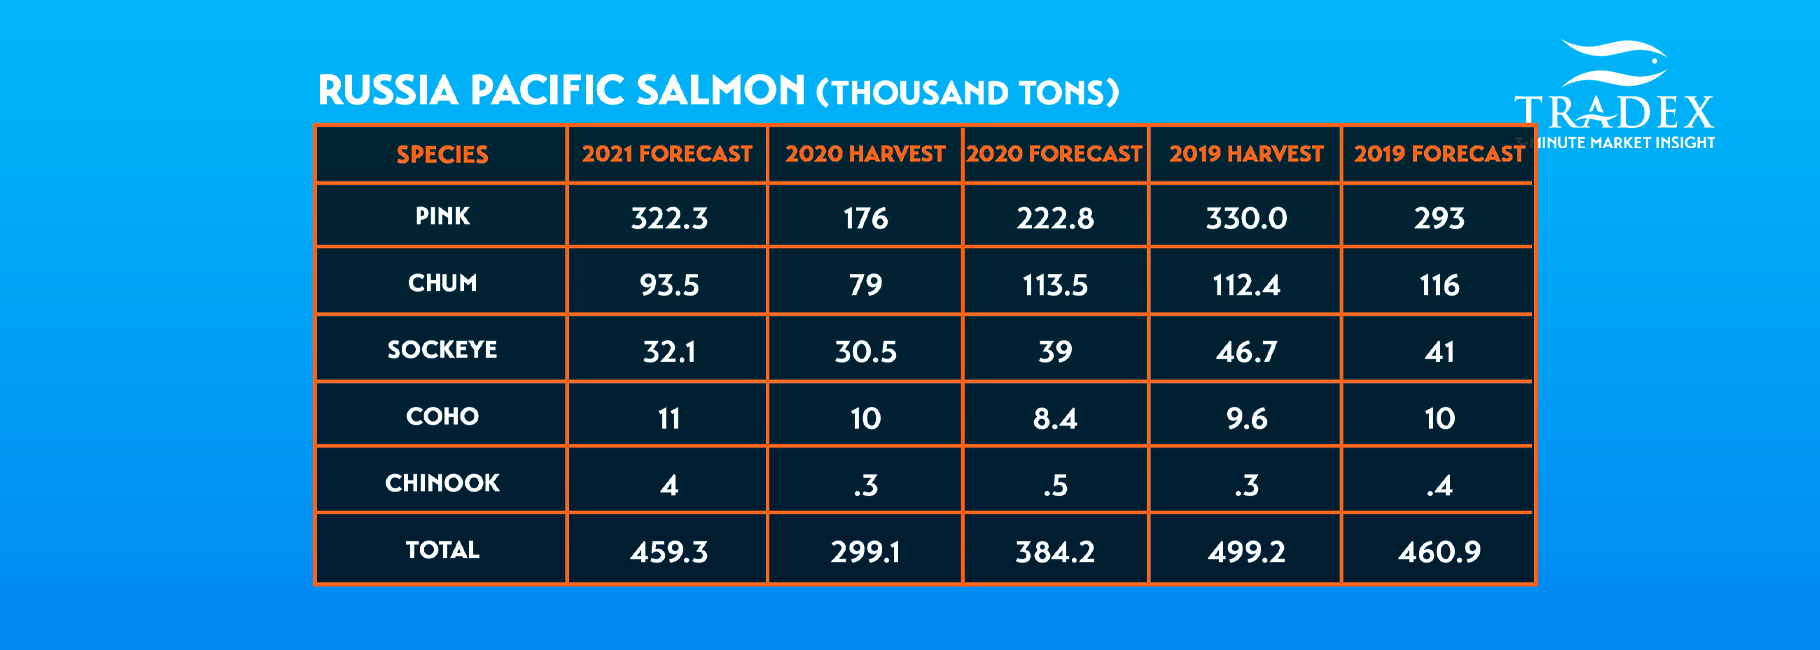 Russia Pacific Salmon Harvest & Forecast